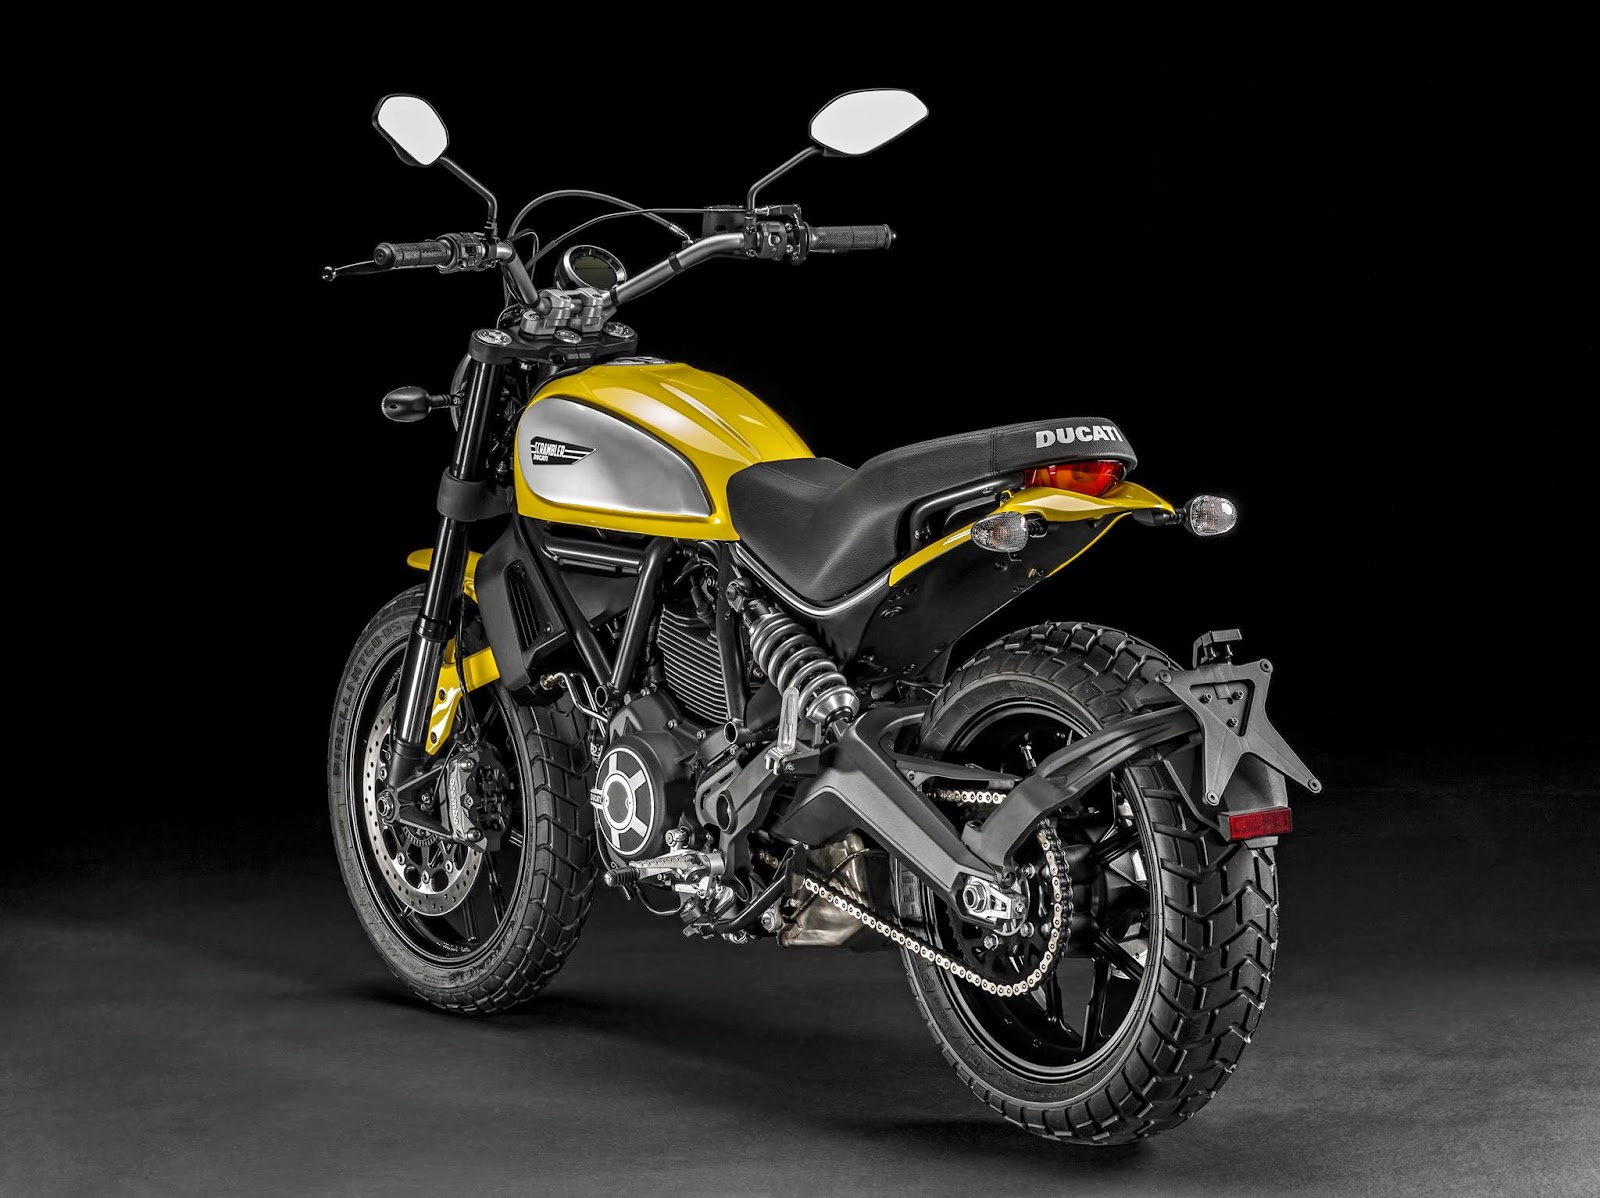 new ducati scrambler - rocketgarage